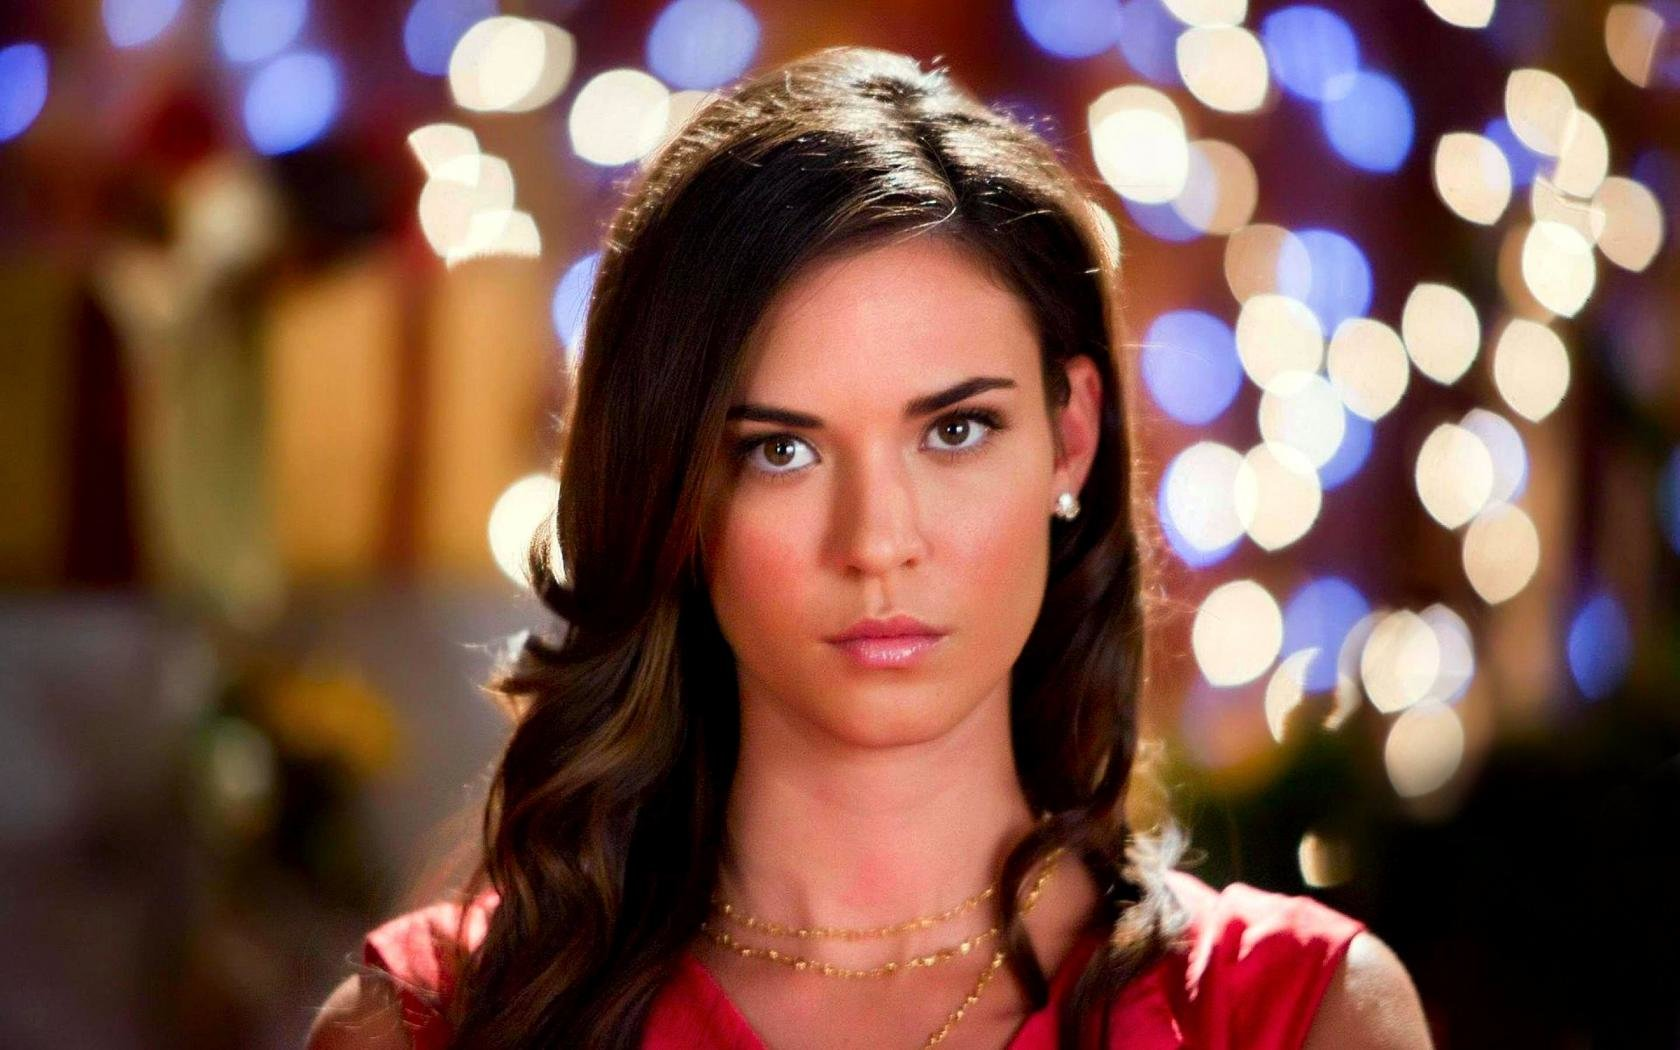 Awesome Odette Annable free wallpaper ID:56066 for hd 1680x1050 desktop